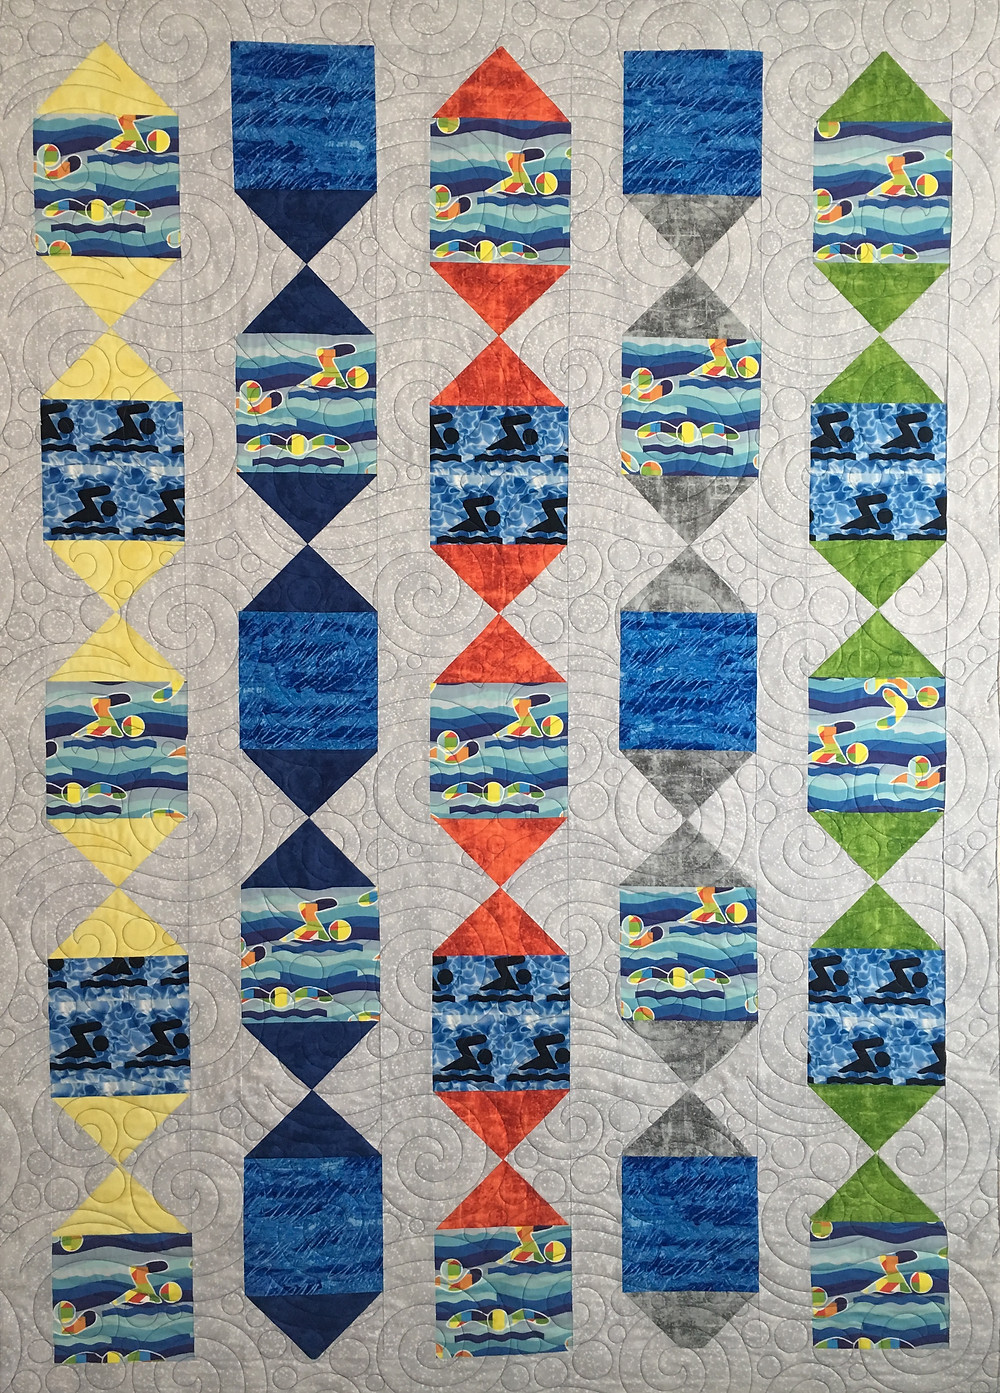 Swimmer Quilt by Nelda Savage